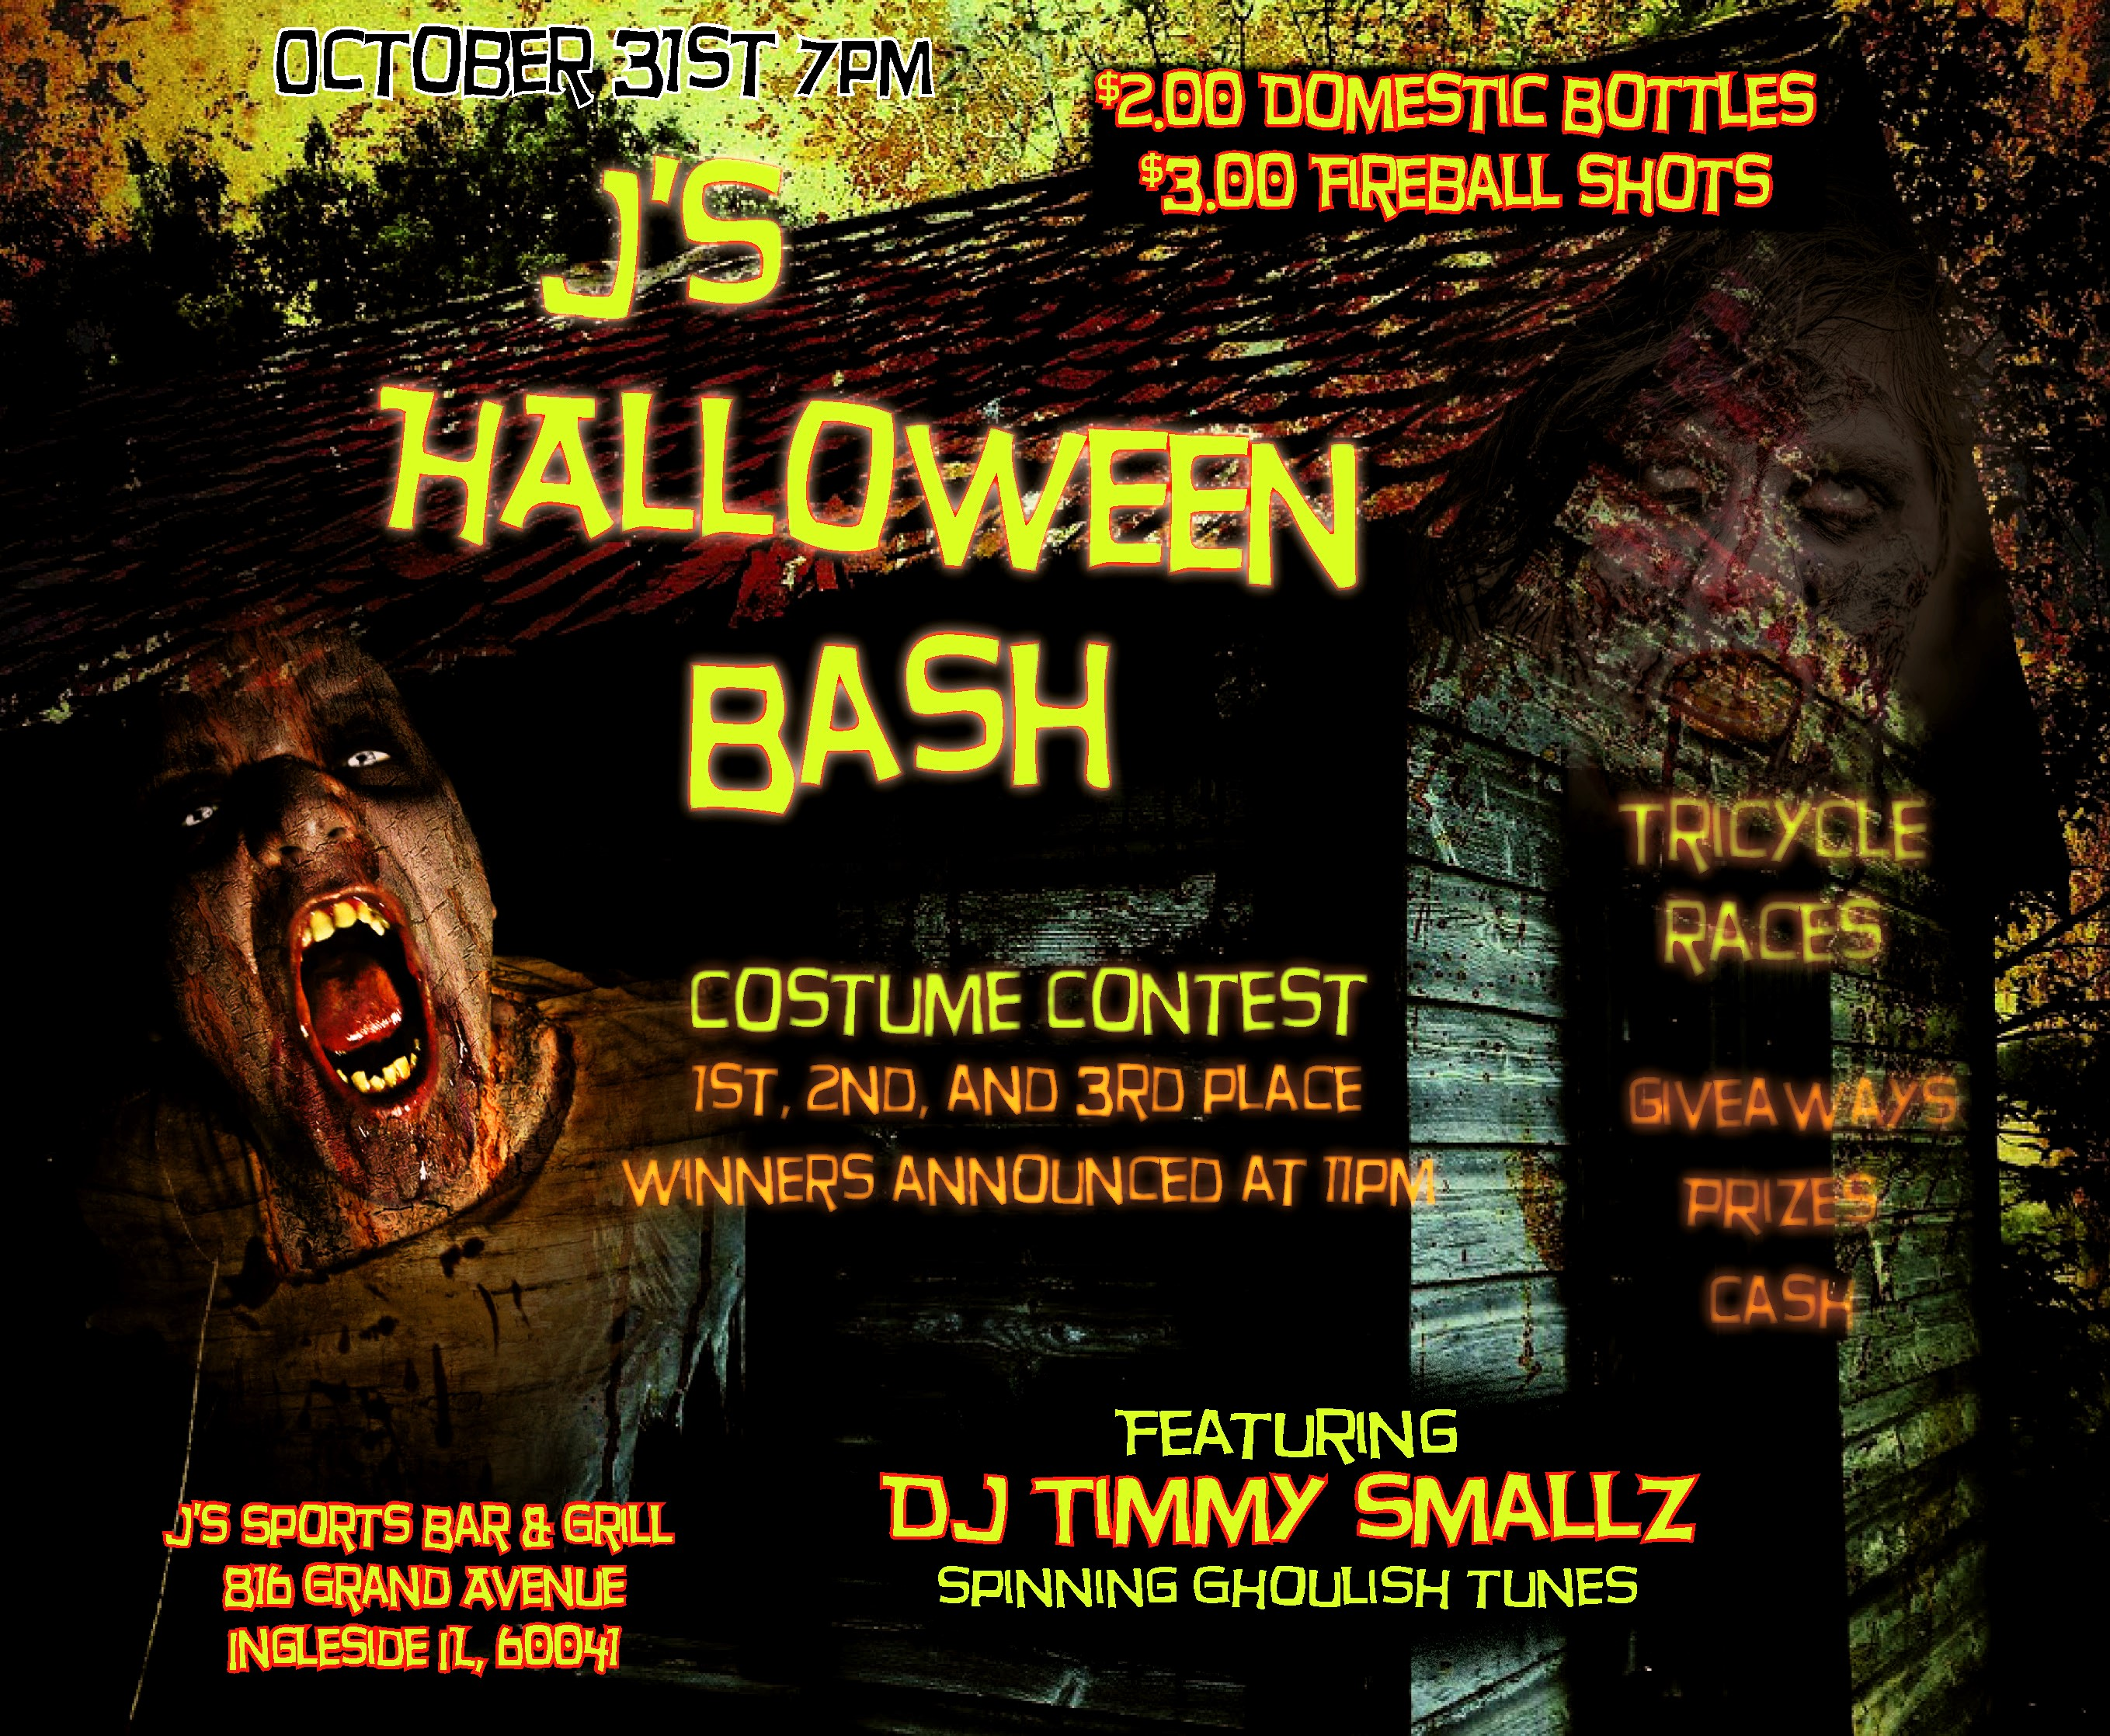 Fireball Halloween Bottle October 2020 J's Halloween BASH, 7pm | Oct 31 | J's Sports Bar & Grill